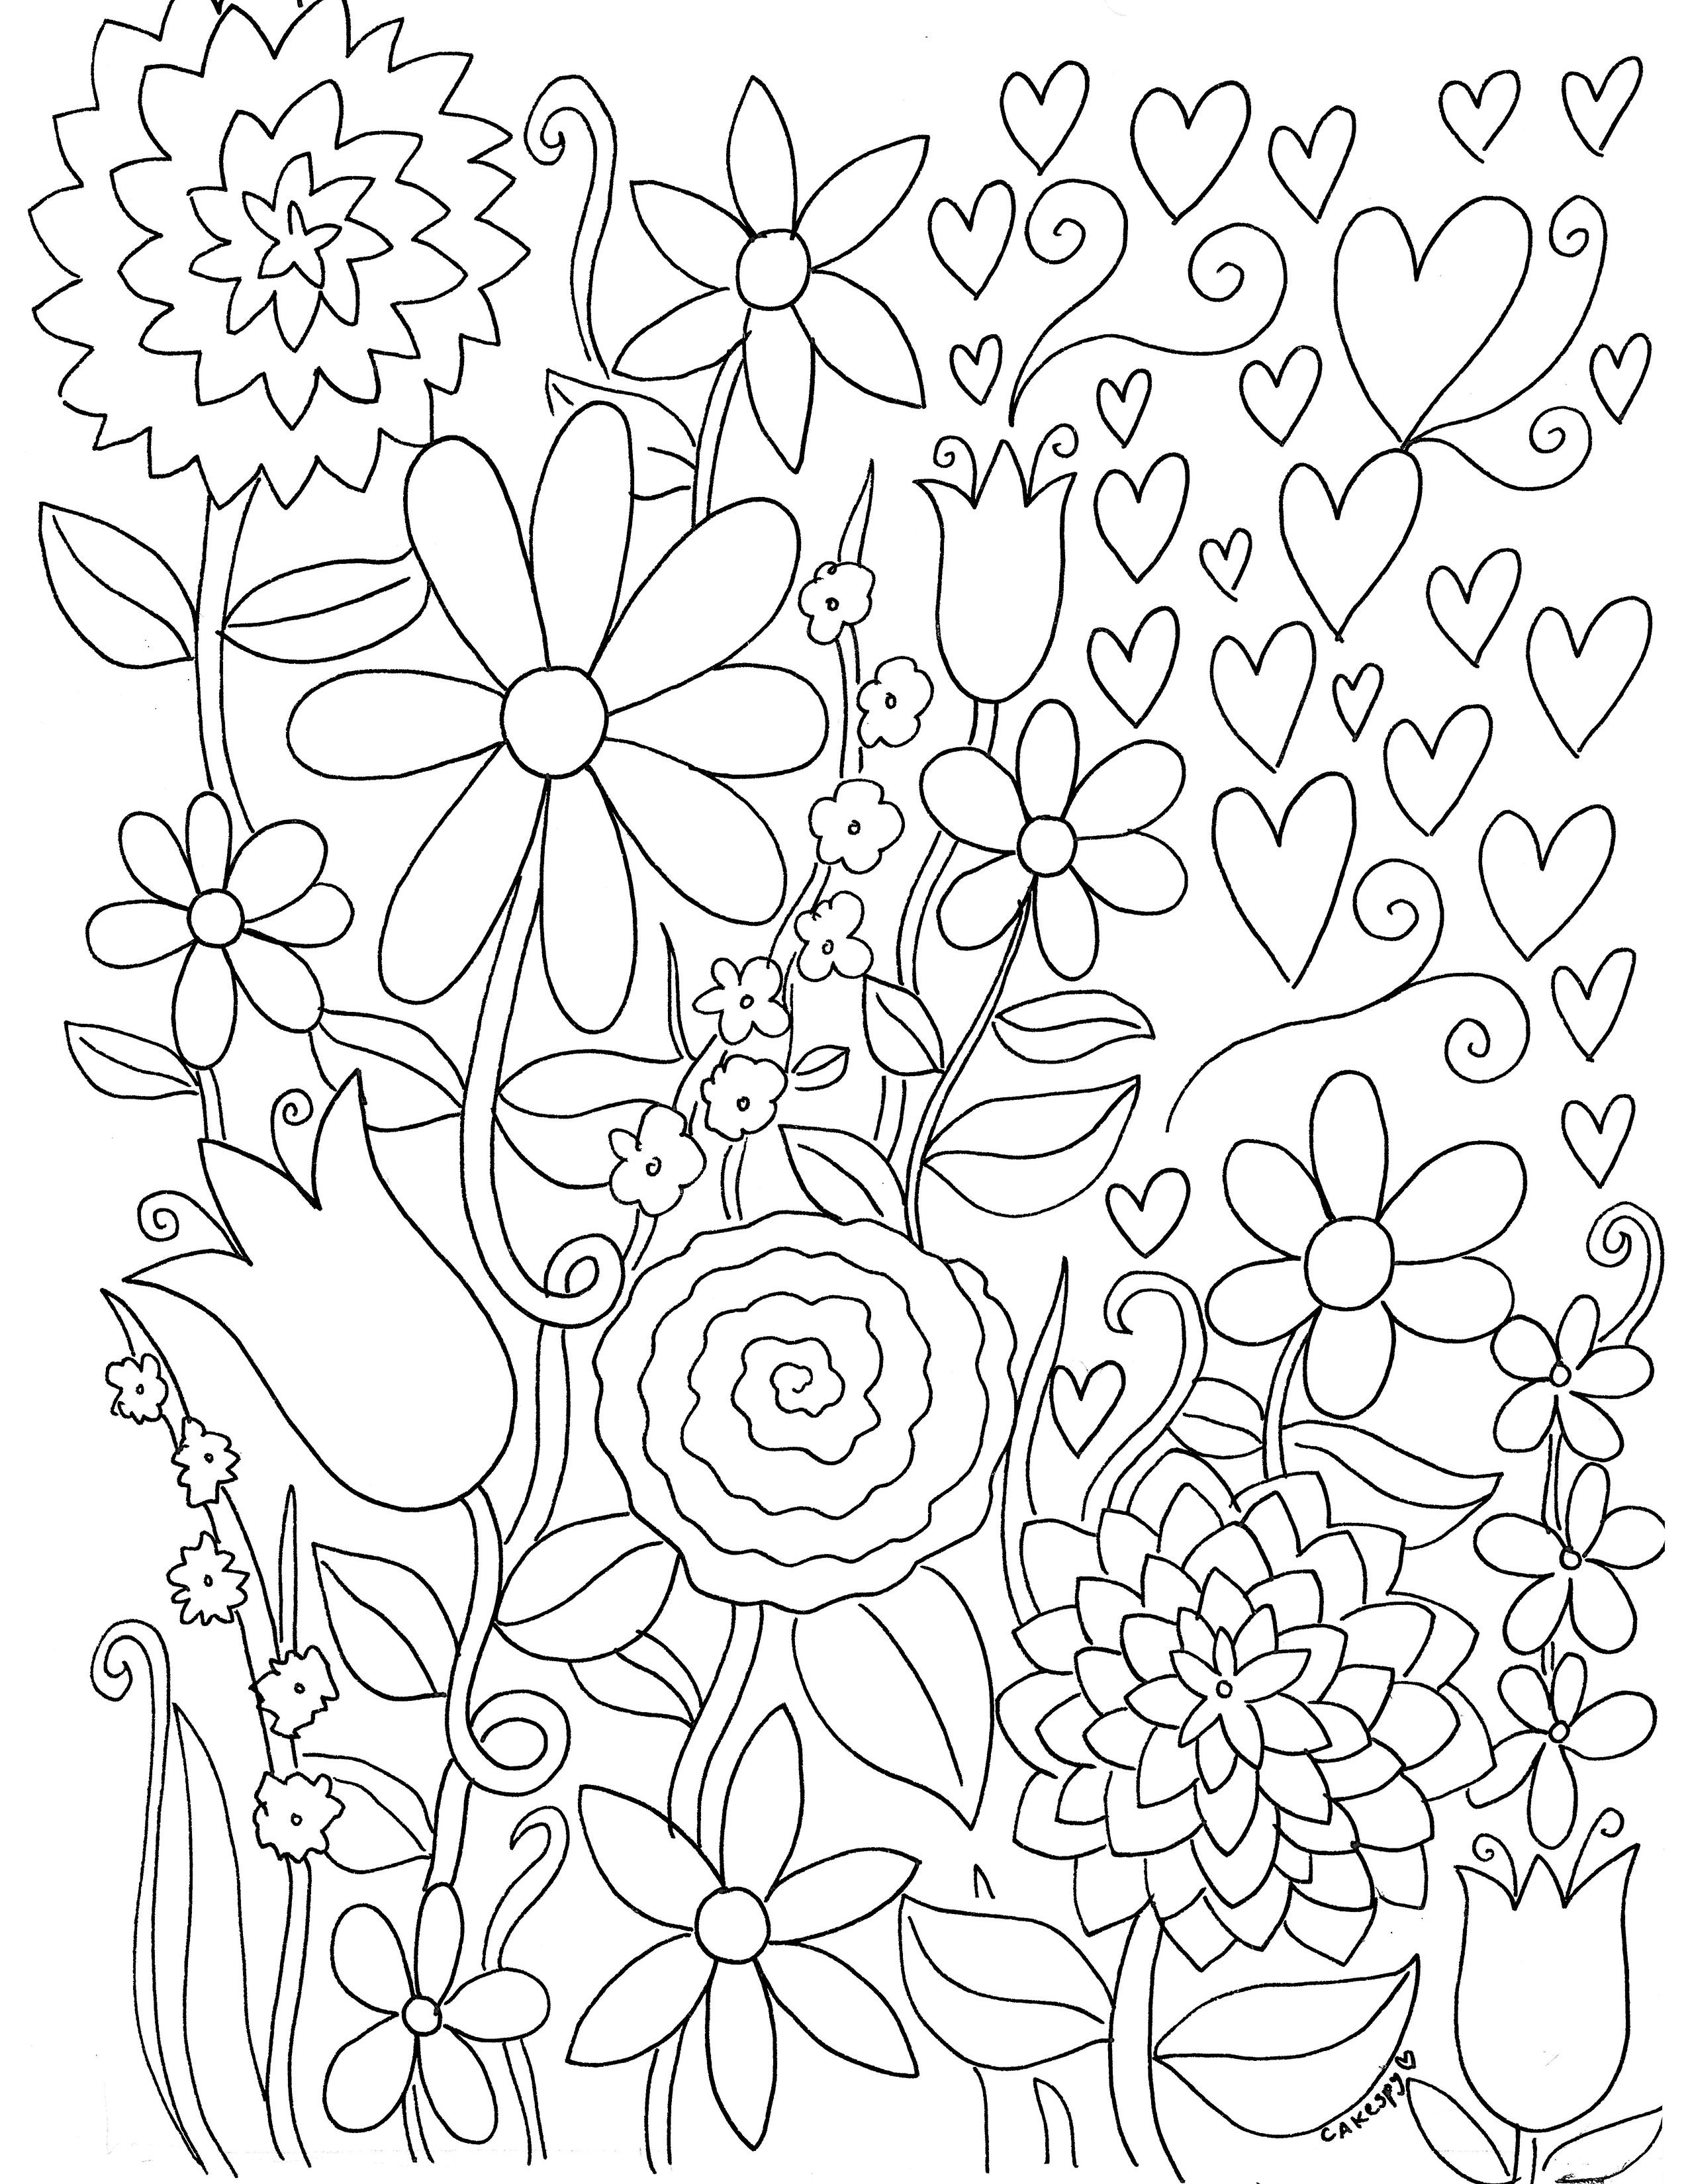 Free Paintnumbers For Adults Downloadable   *printable Art - Free Printable Coloring Book Pages For Adults